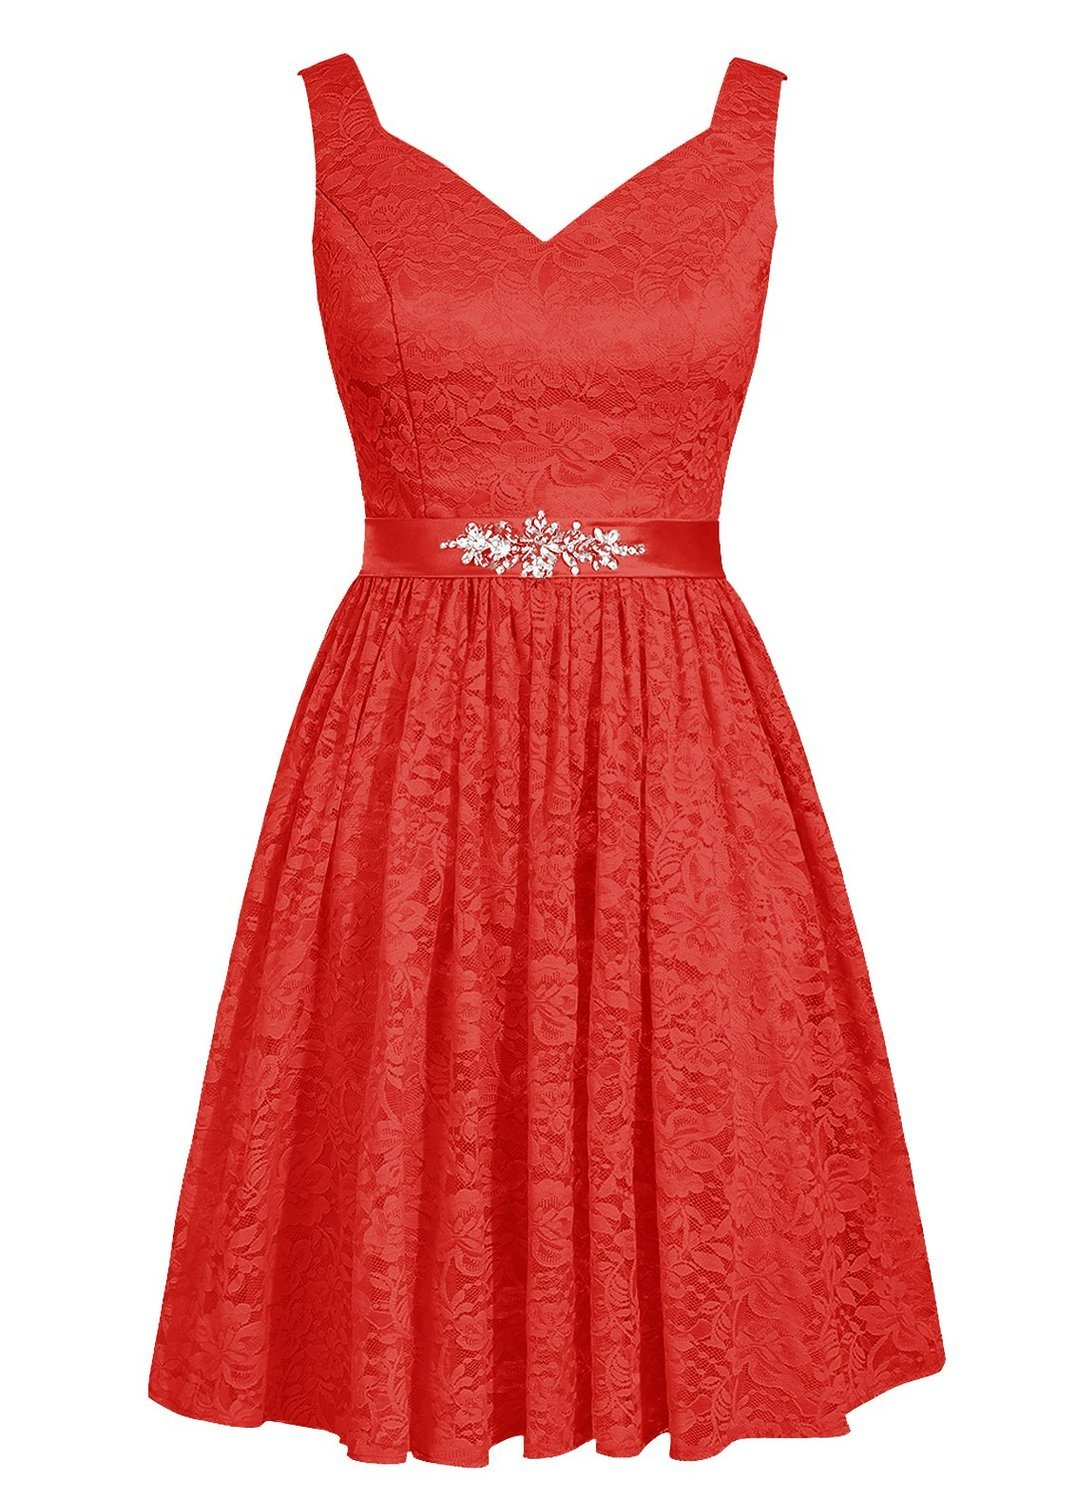 Angel Formal Dresses Women's V Neck Lace Bridesmaid Dresses Party Dress (20, Red)